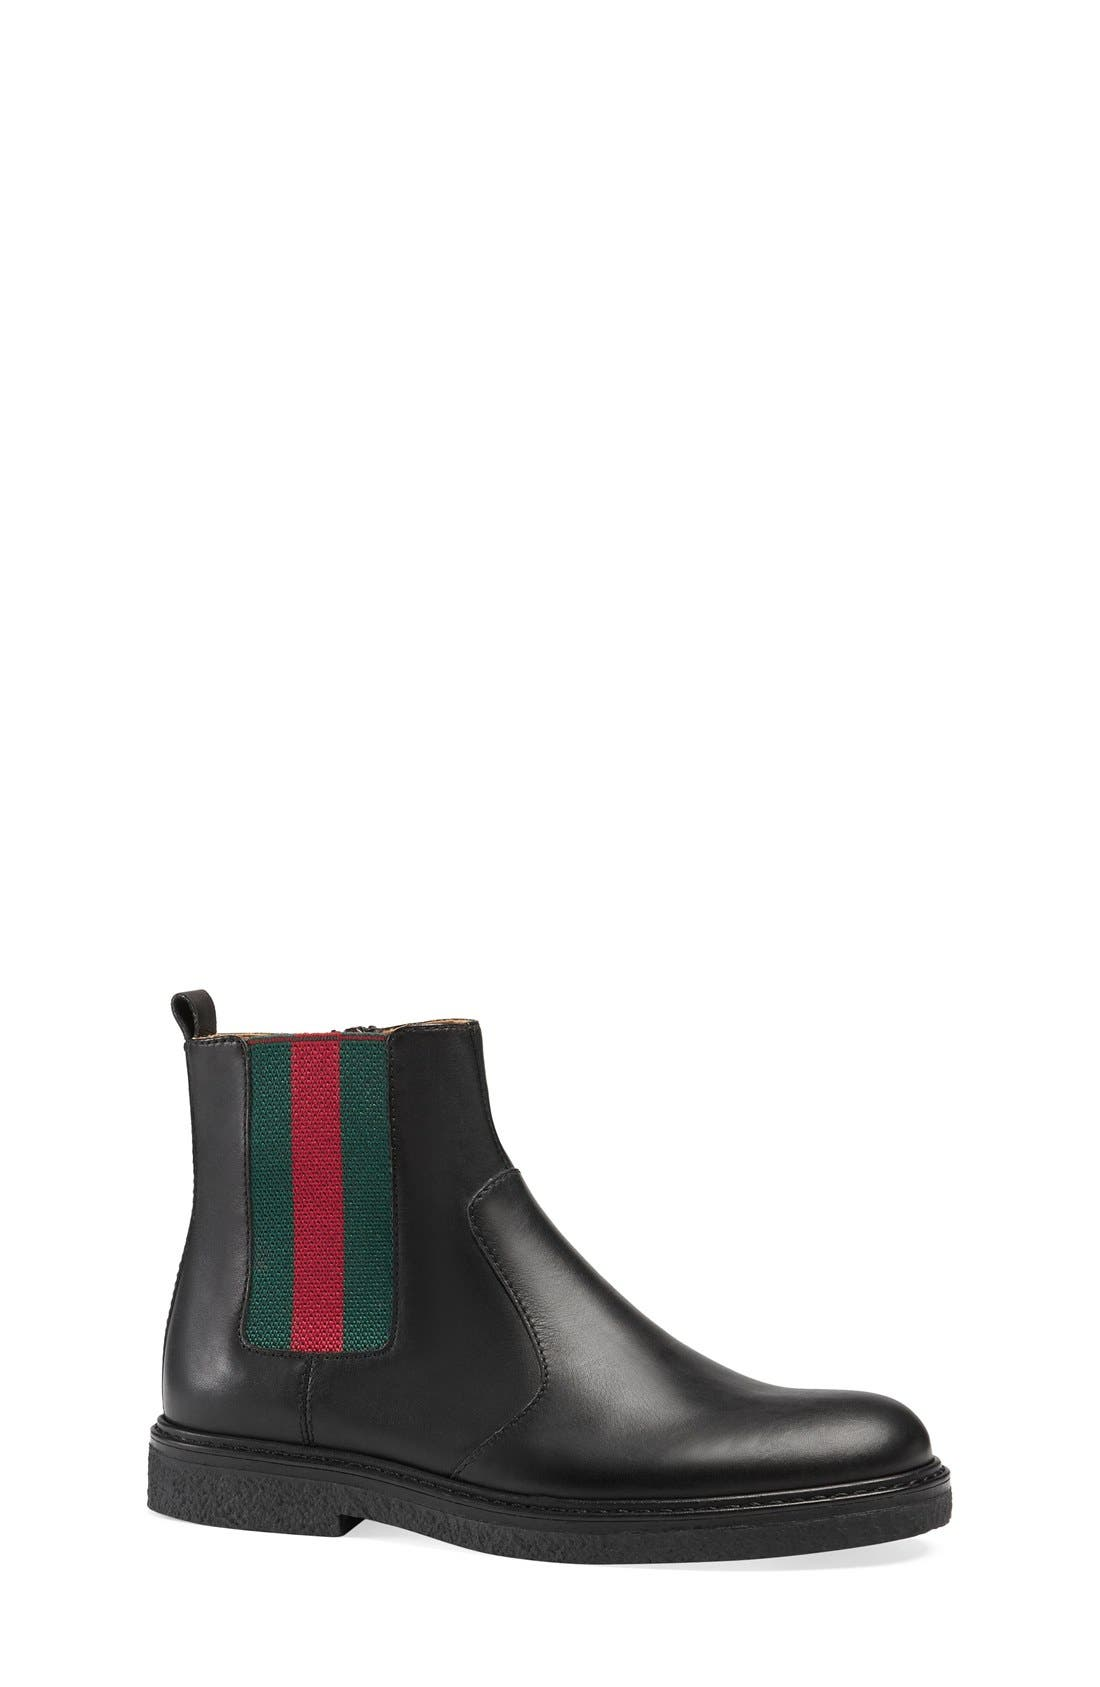 'Joshua' Chelsea Boot,                             Alternate thumbnail 2, color,                             001